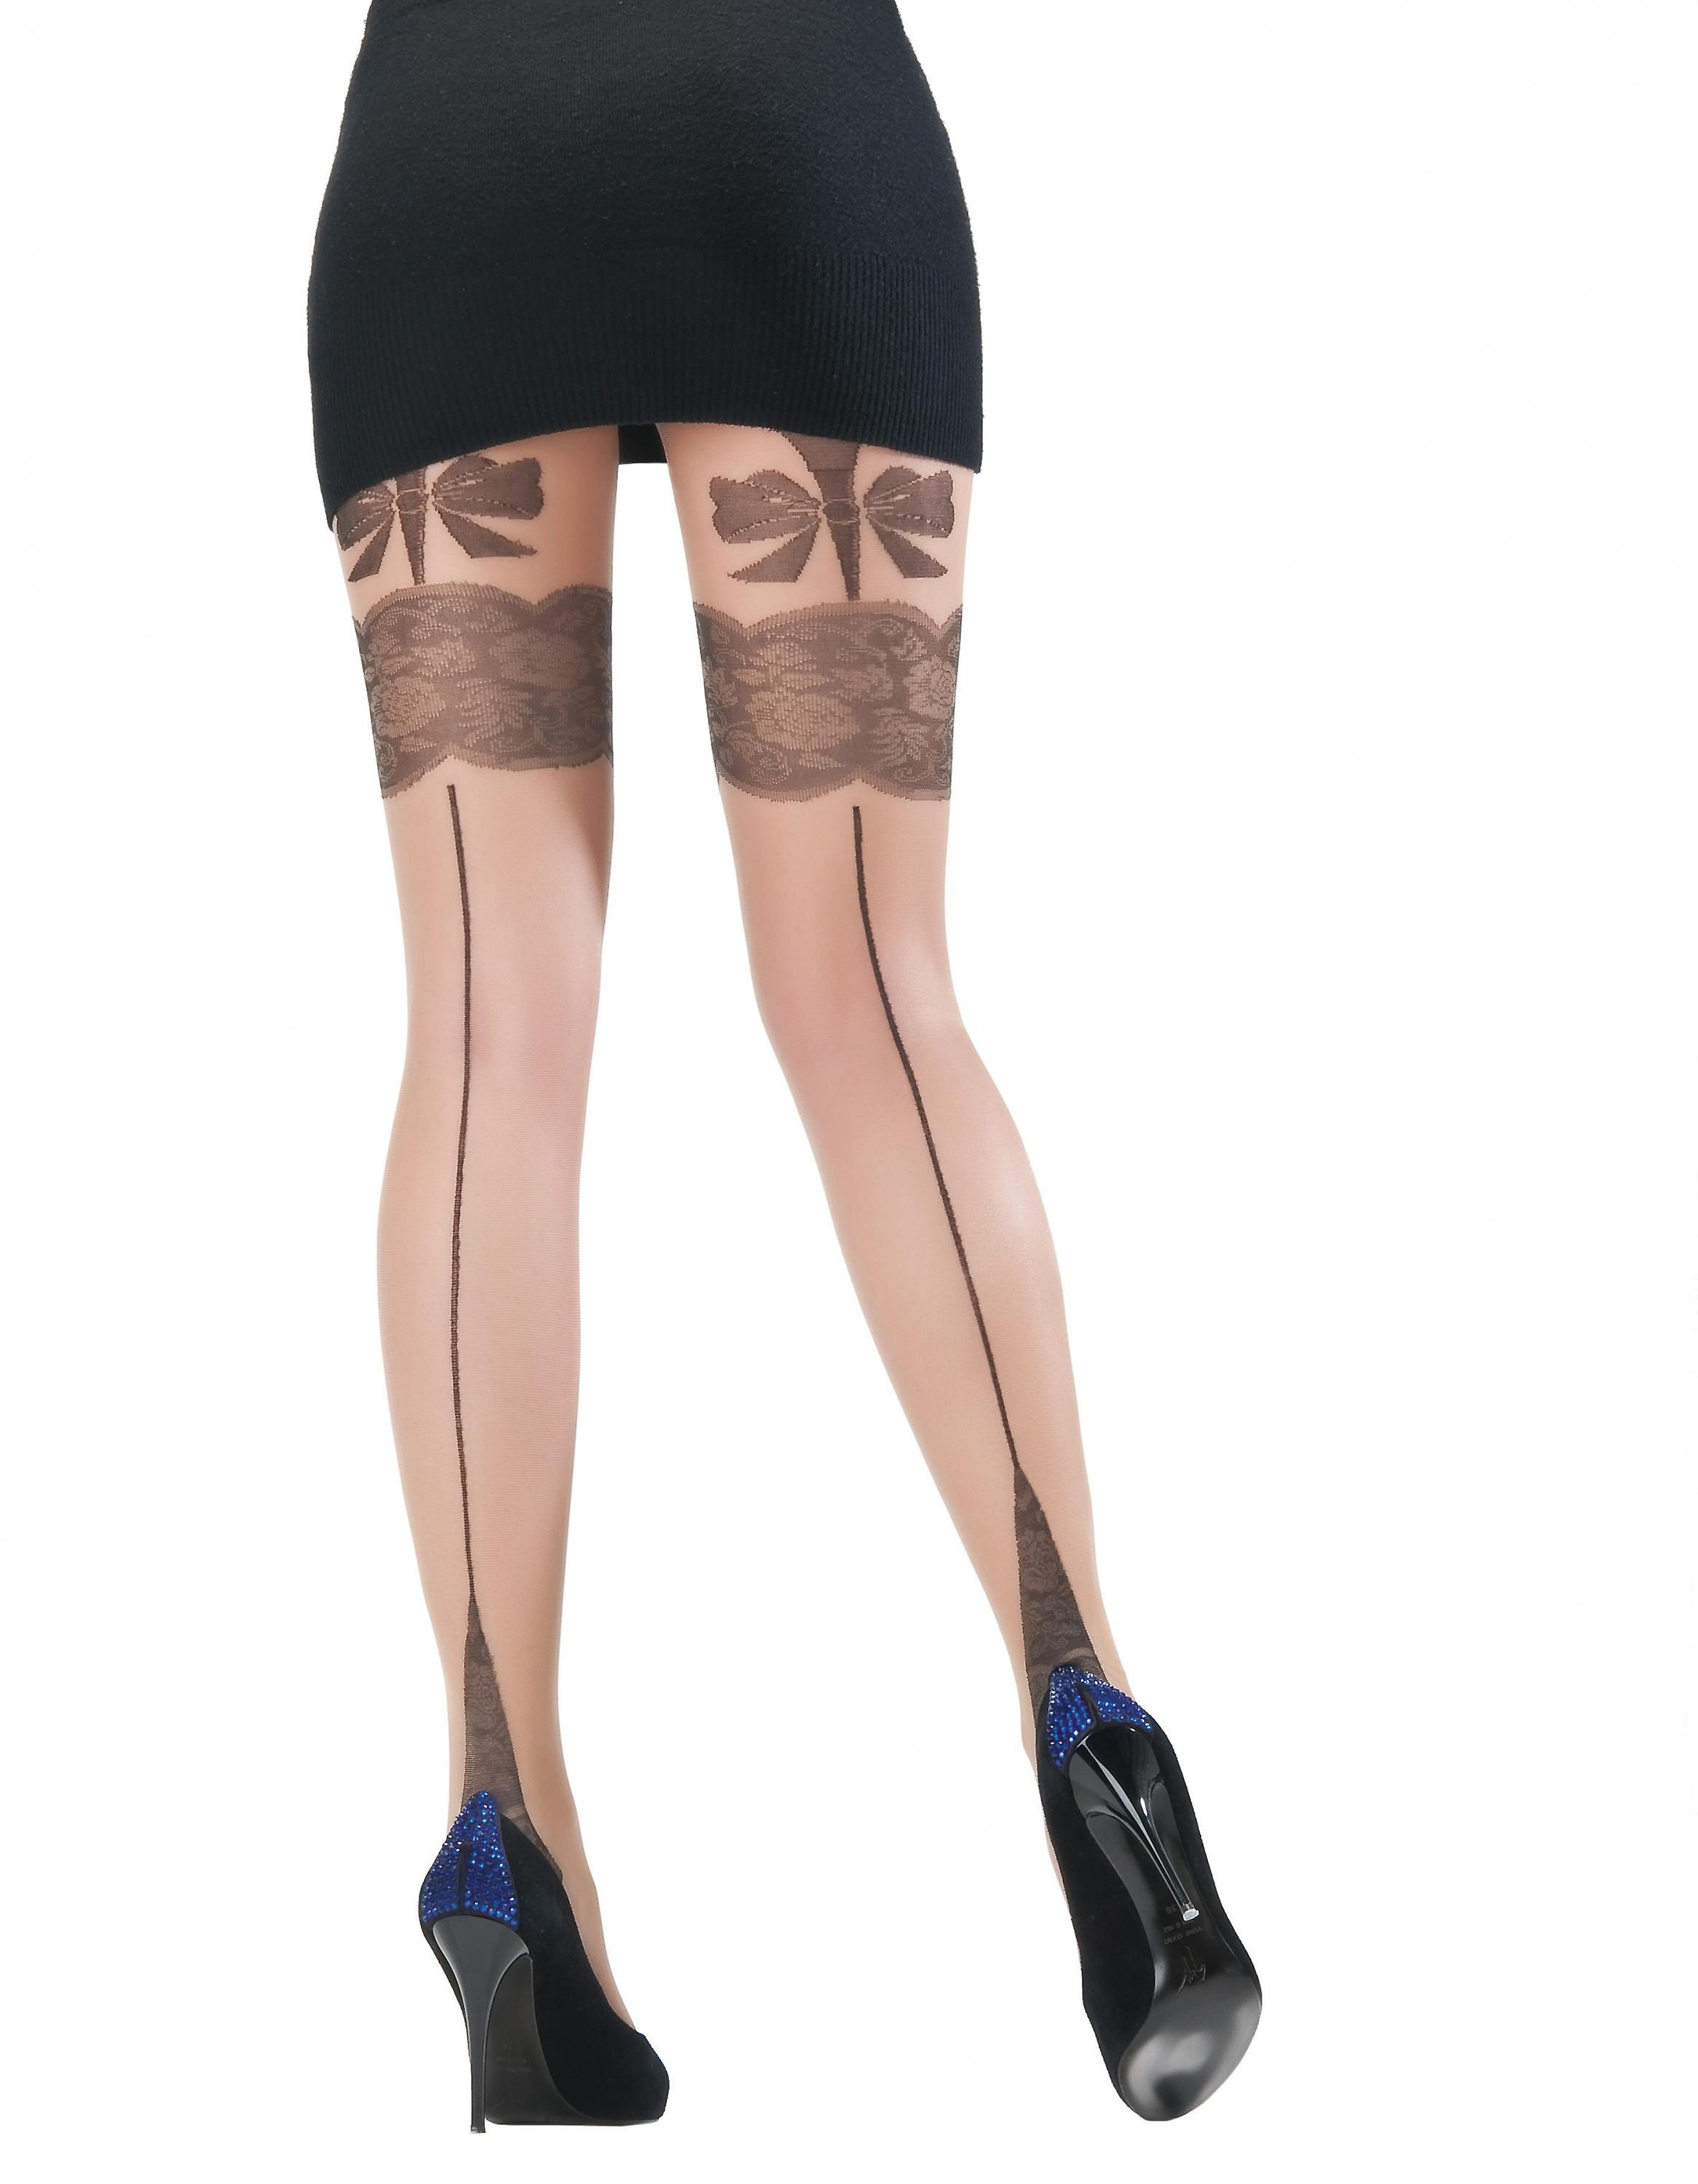 Princess - ladies tights with straps look back seam loop pianissimi 15 DEN